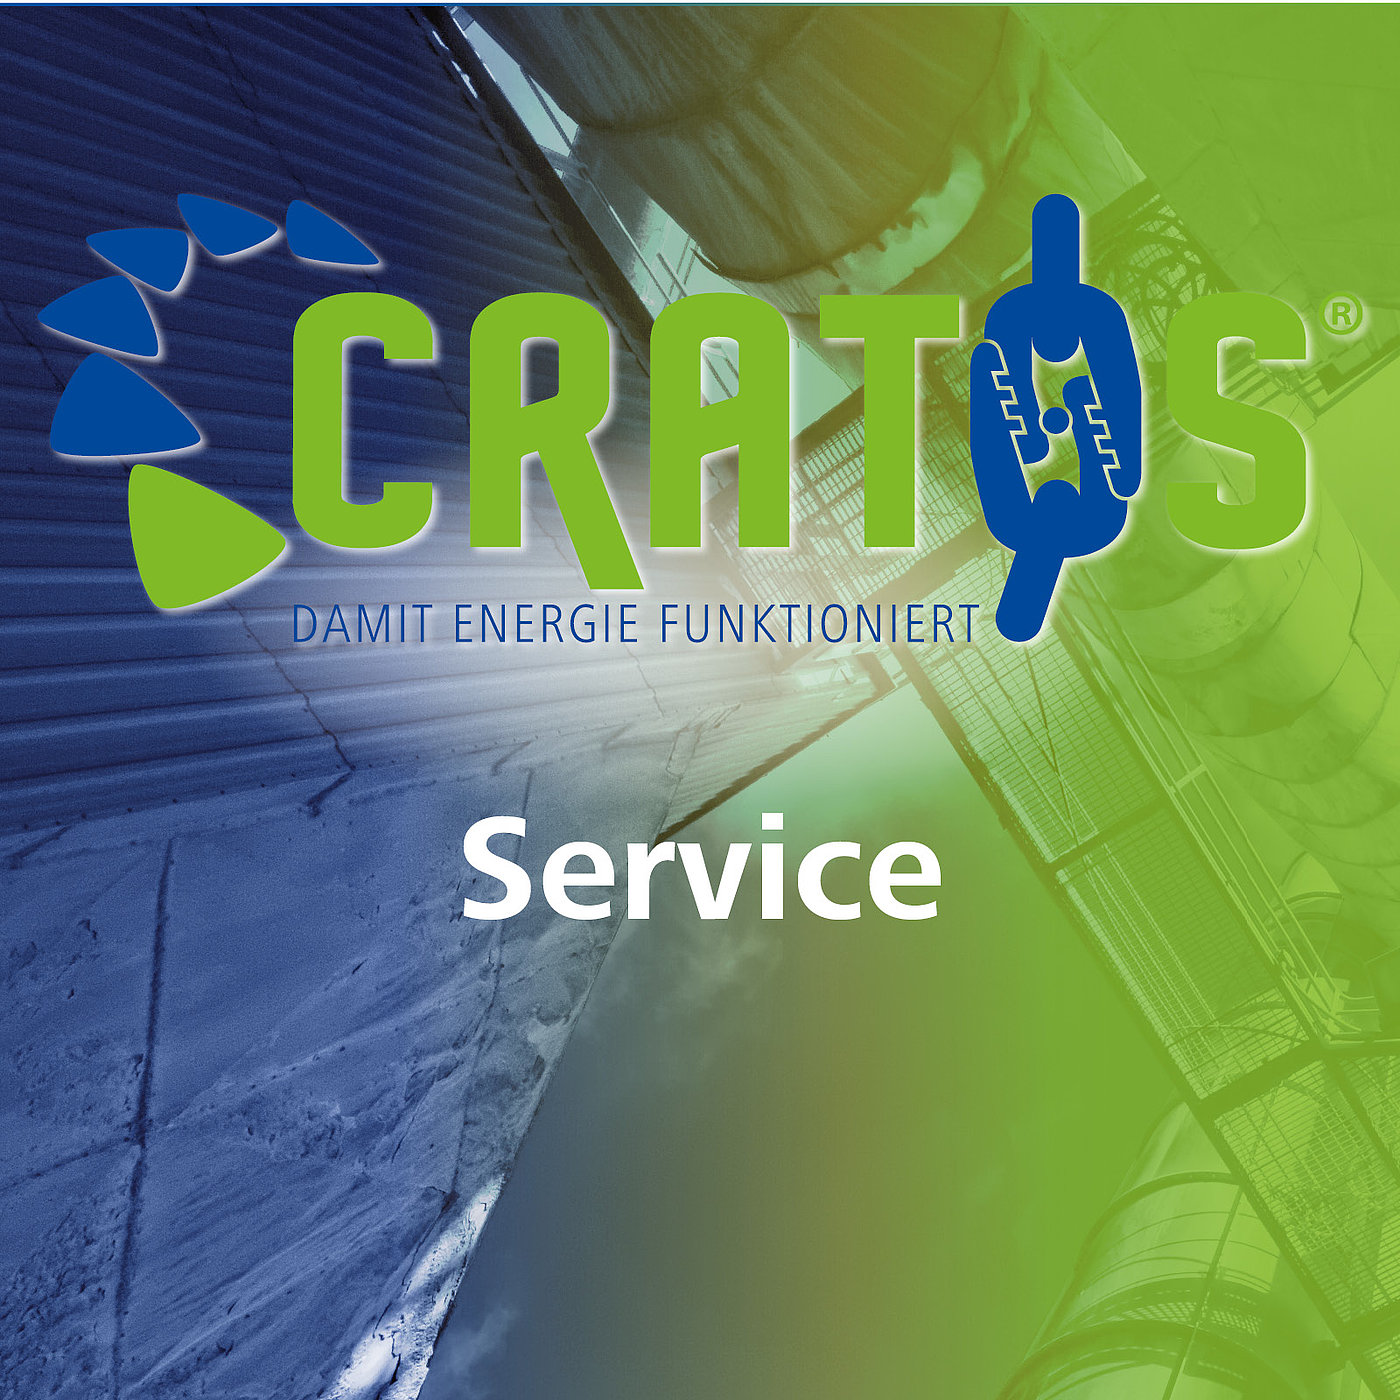 CRATOS Service, damit Energie funktioniert